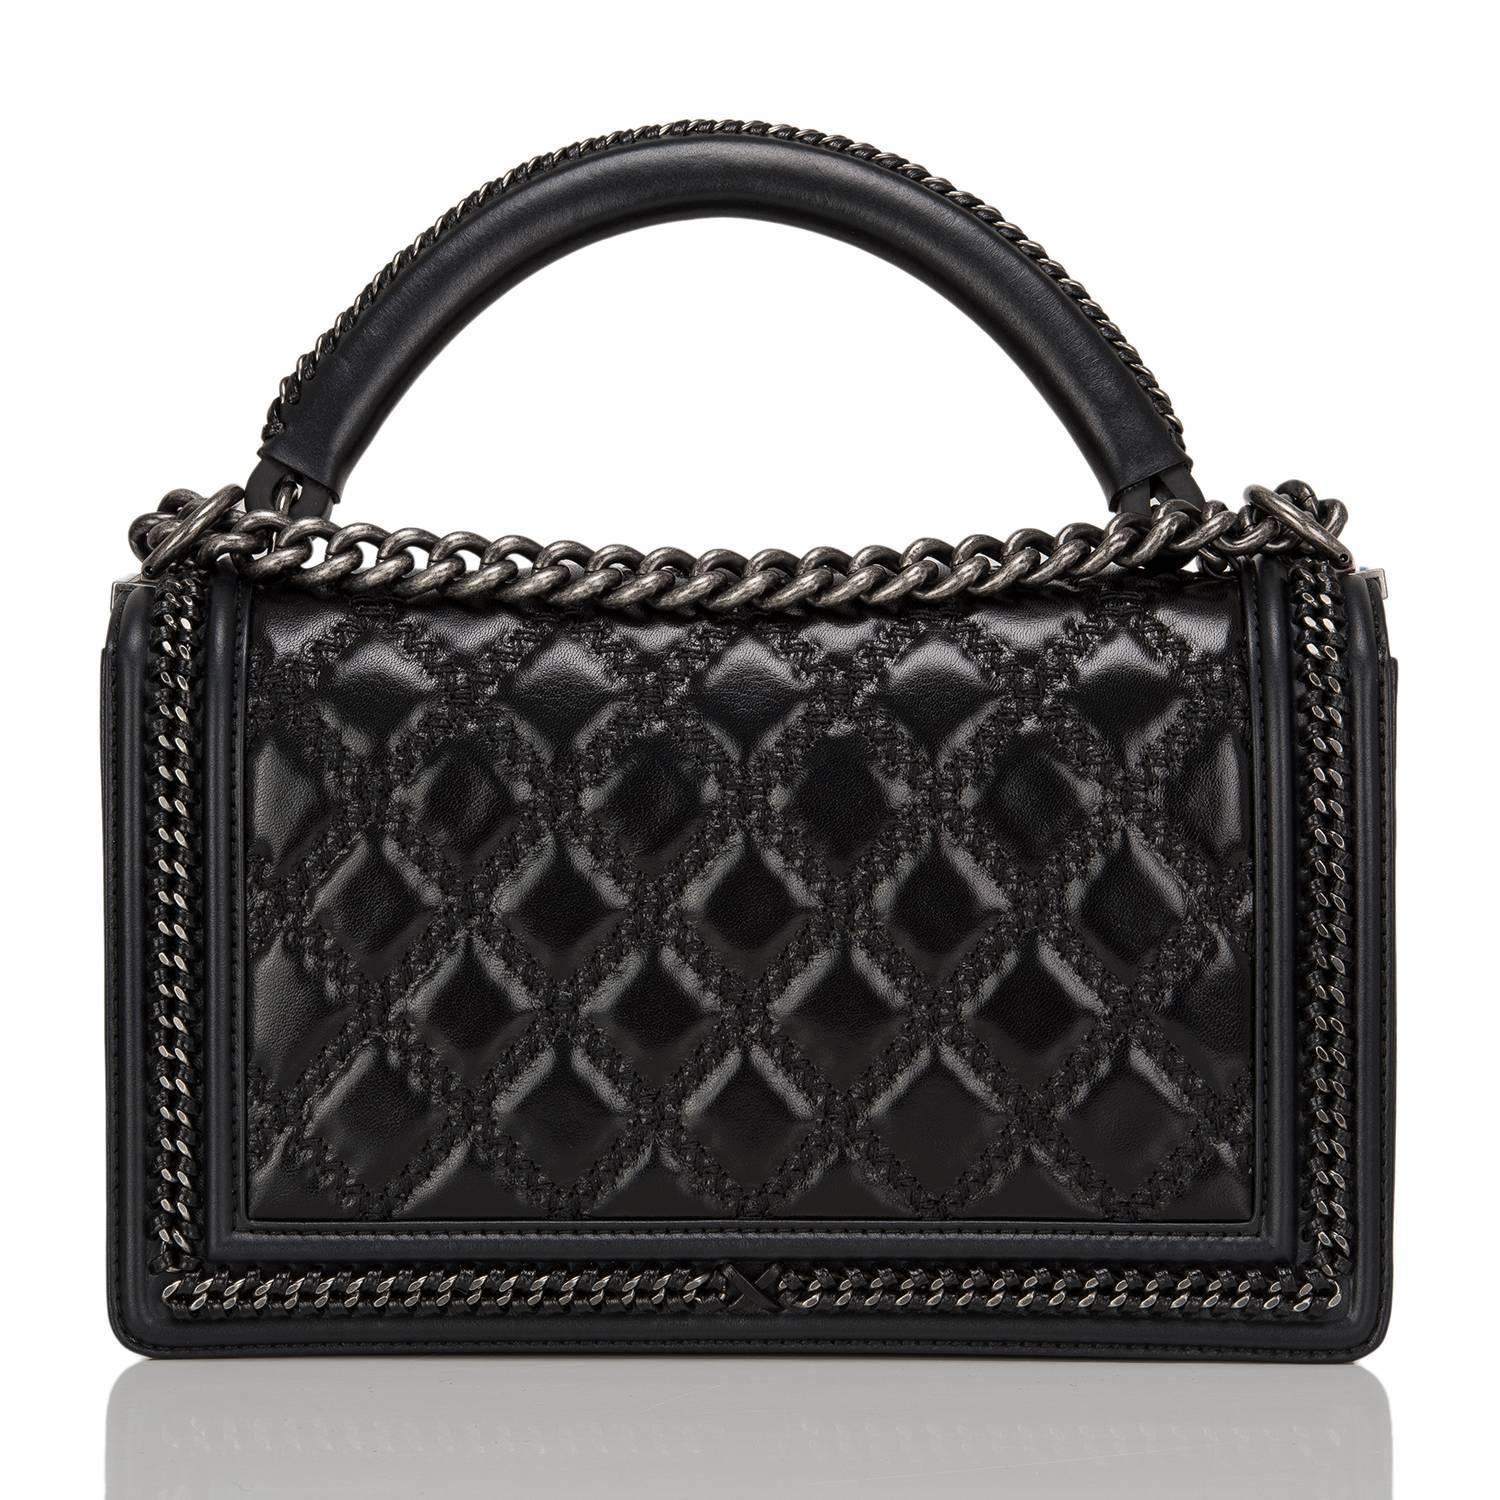 55e80647cdc Chanel Boy Bag With Handle In Calfksin A94811